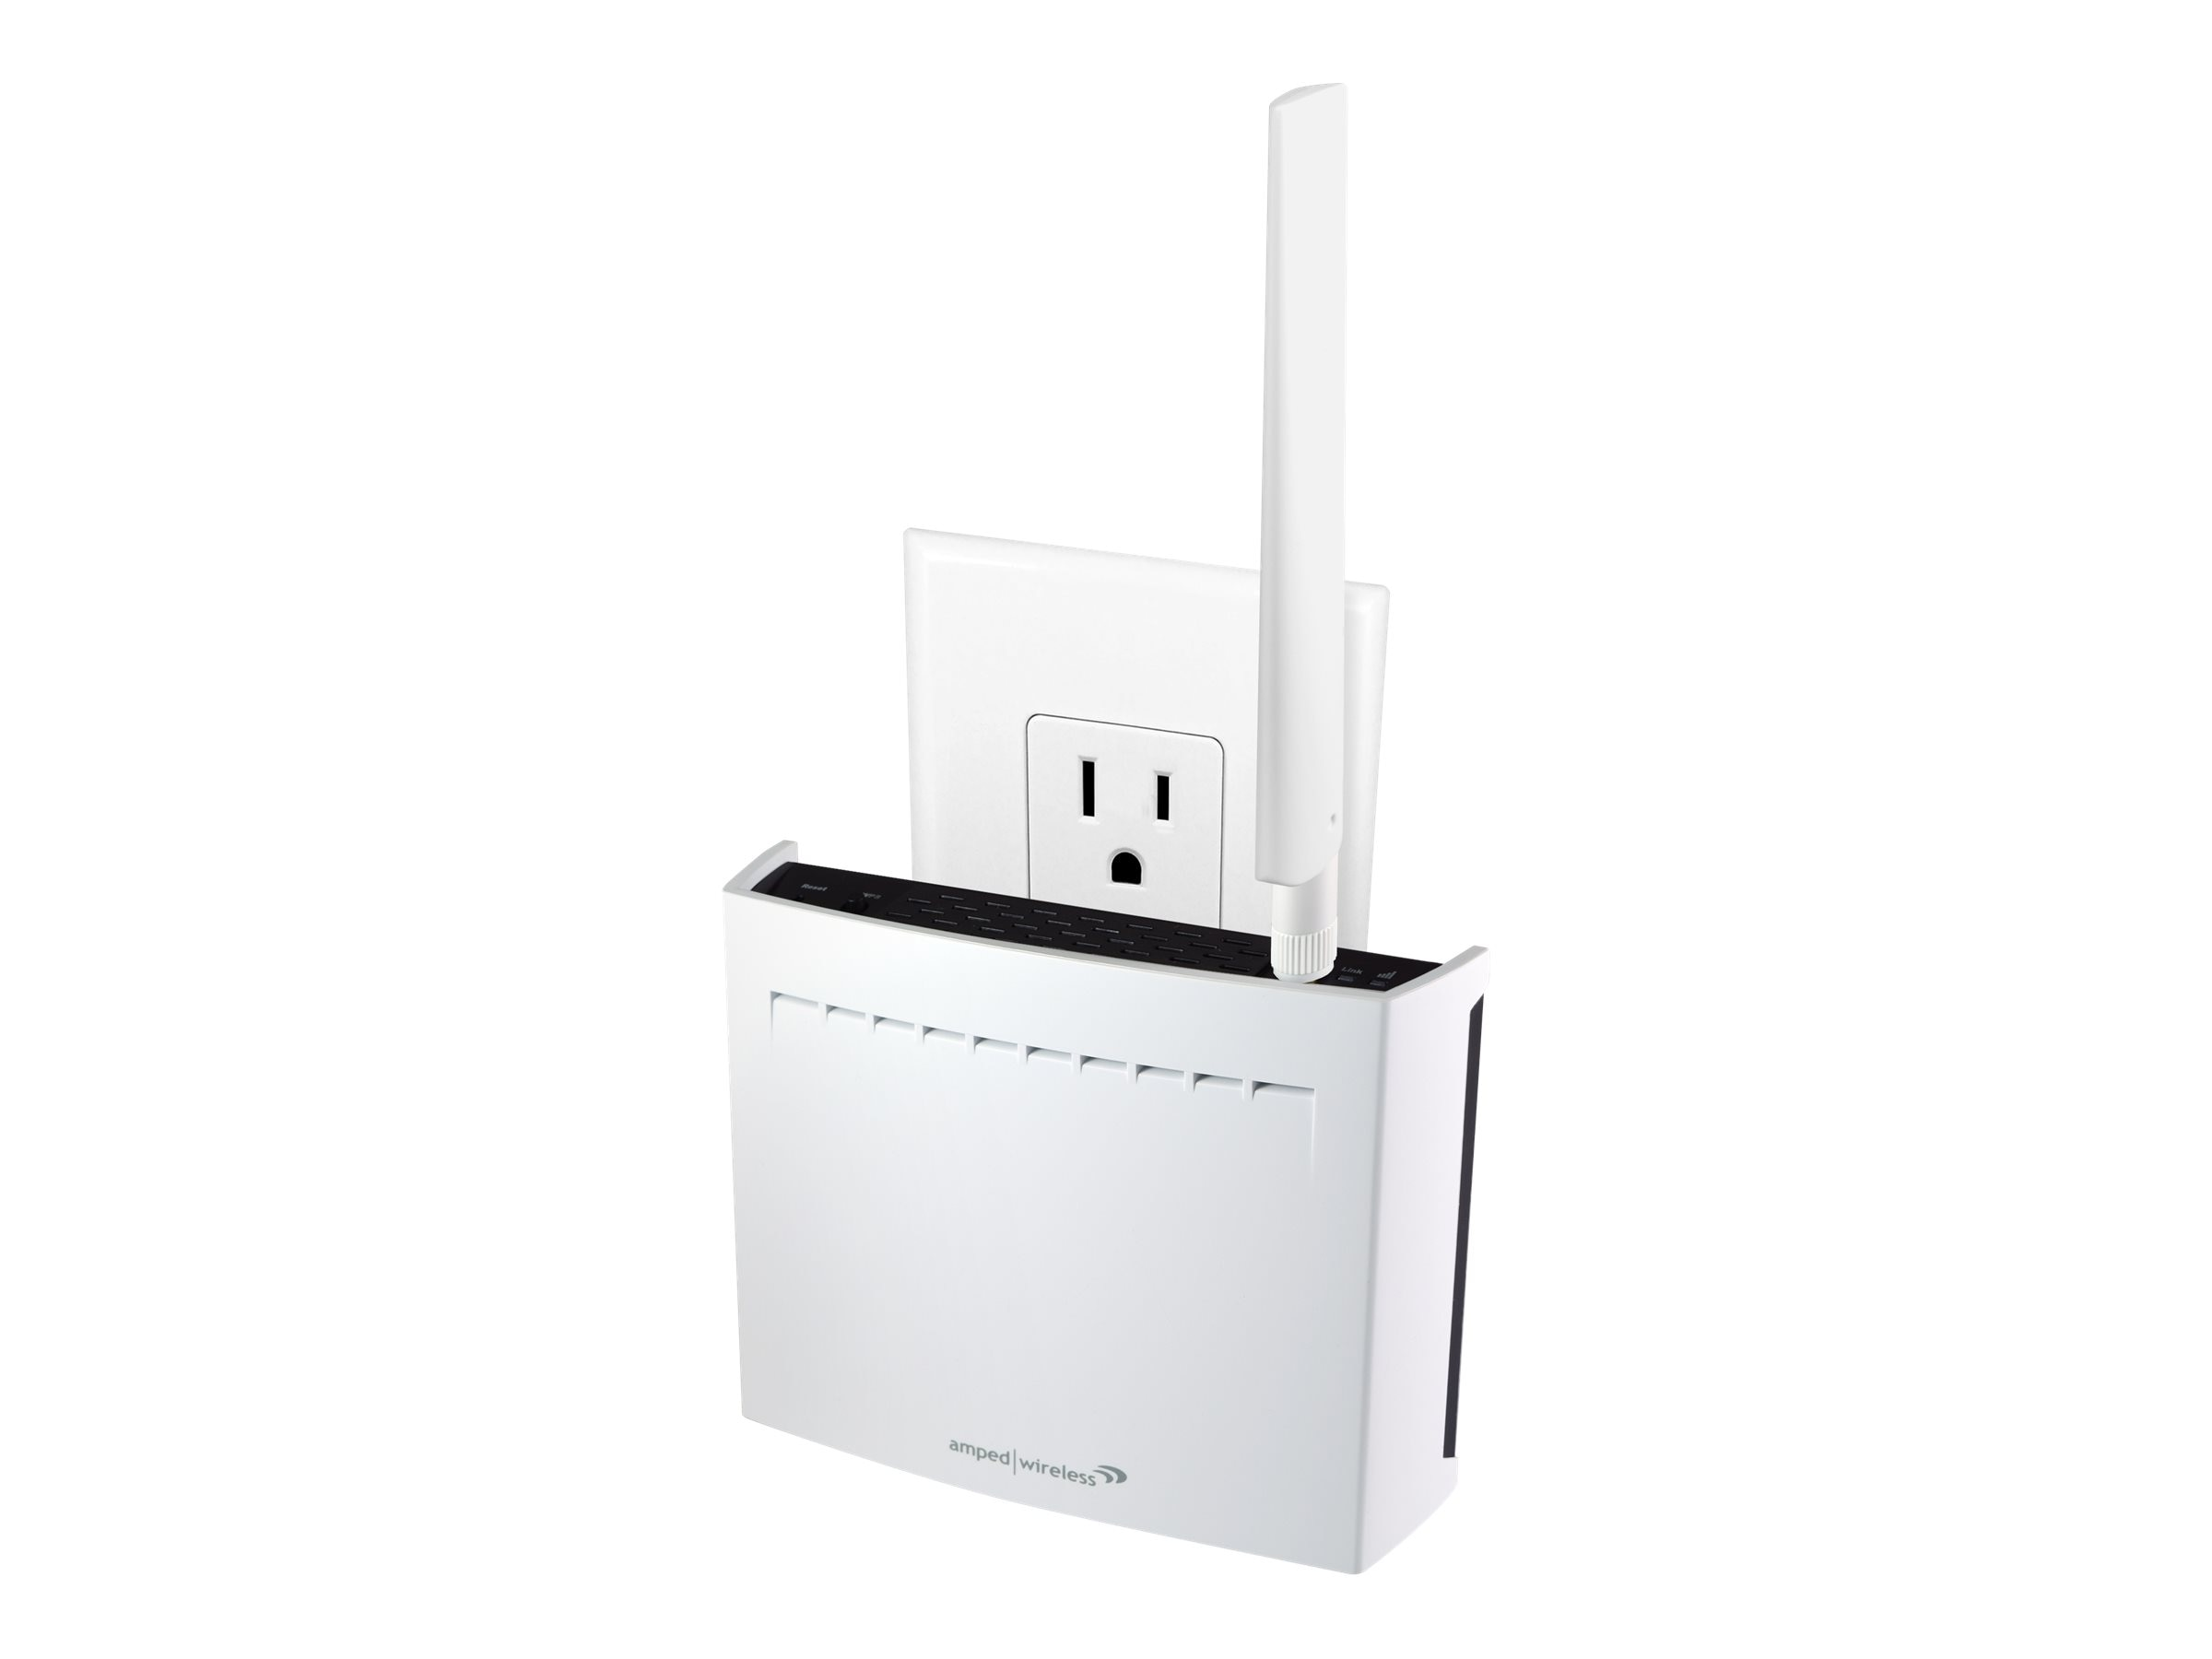 Amped Wireless REC33A Image 1